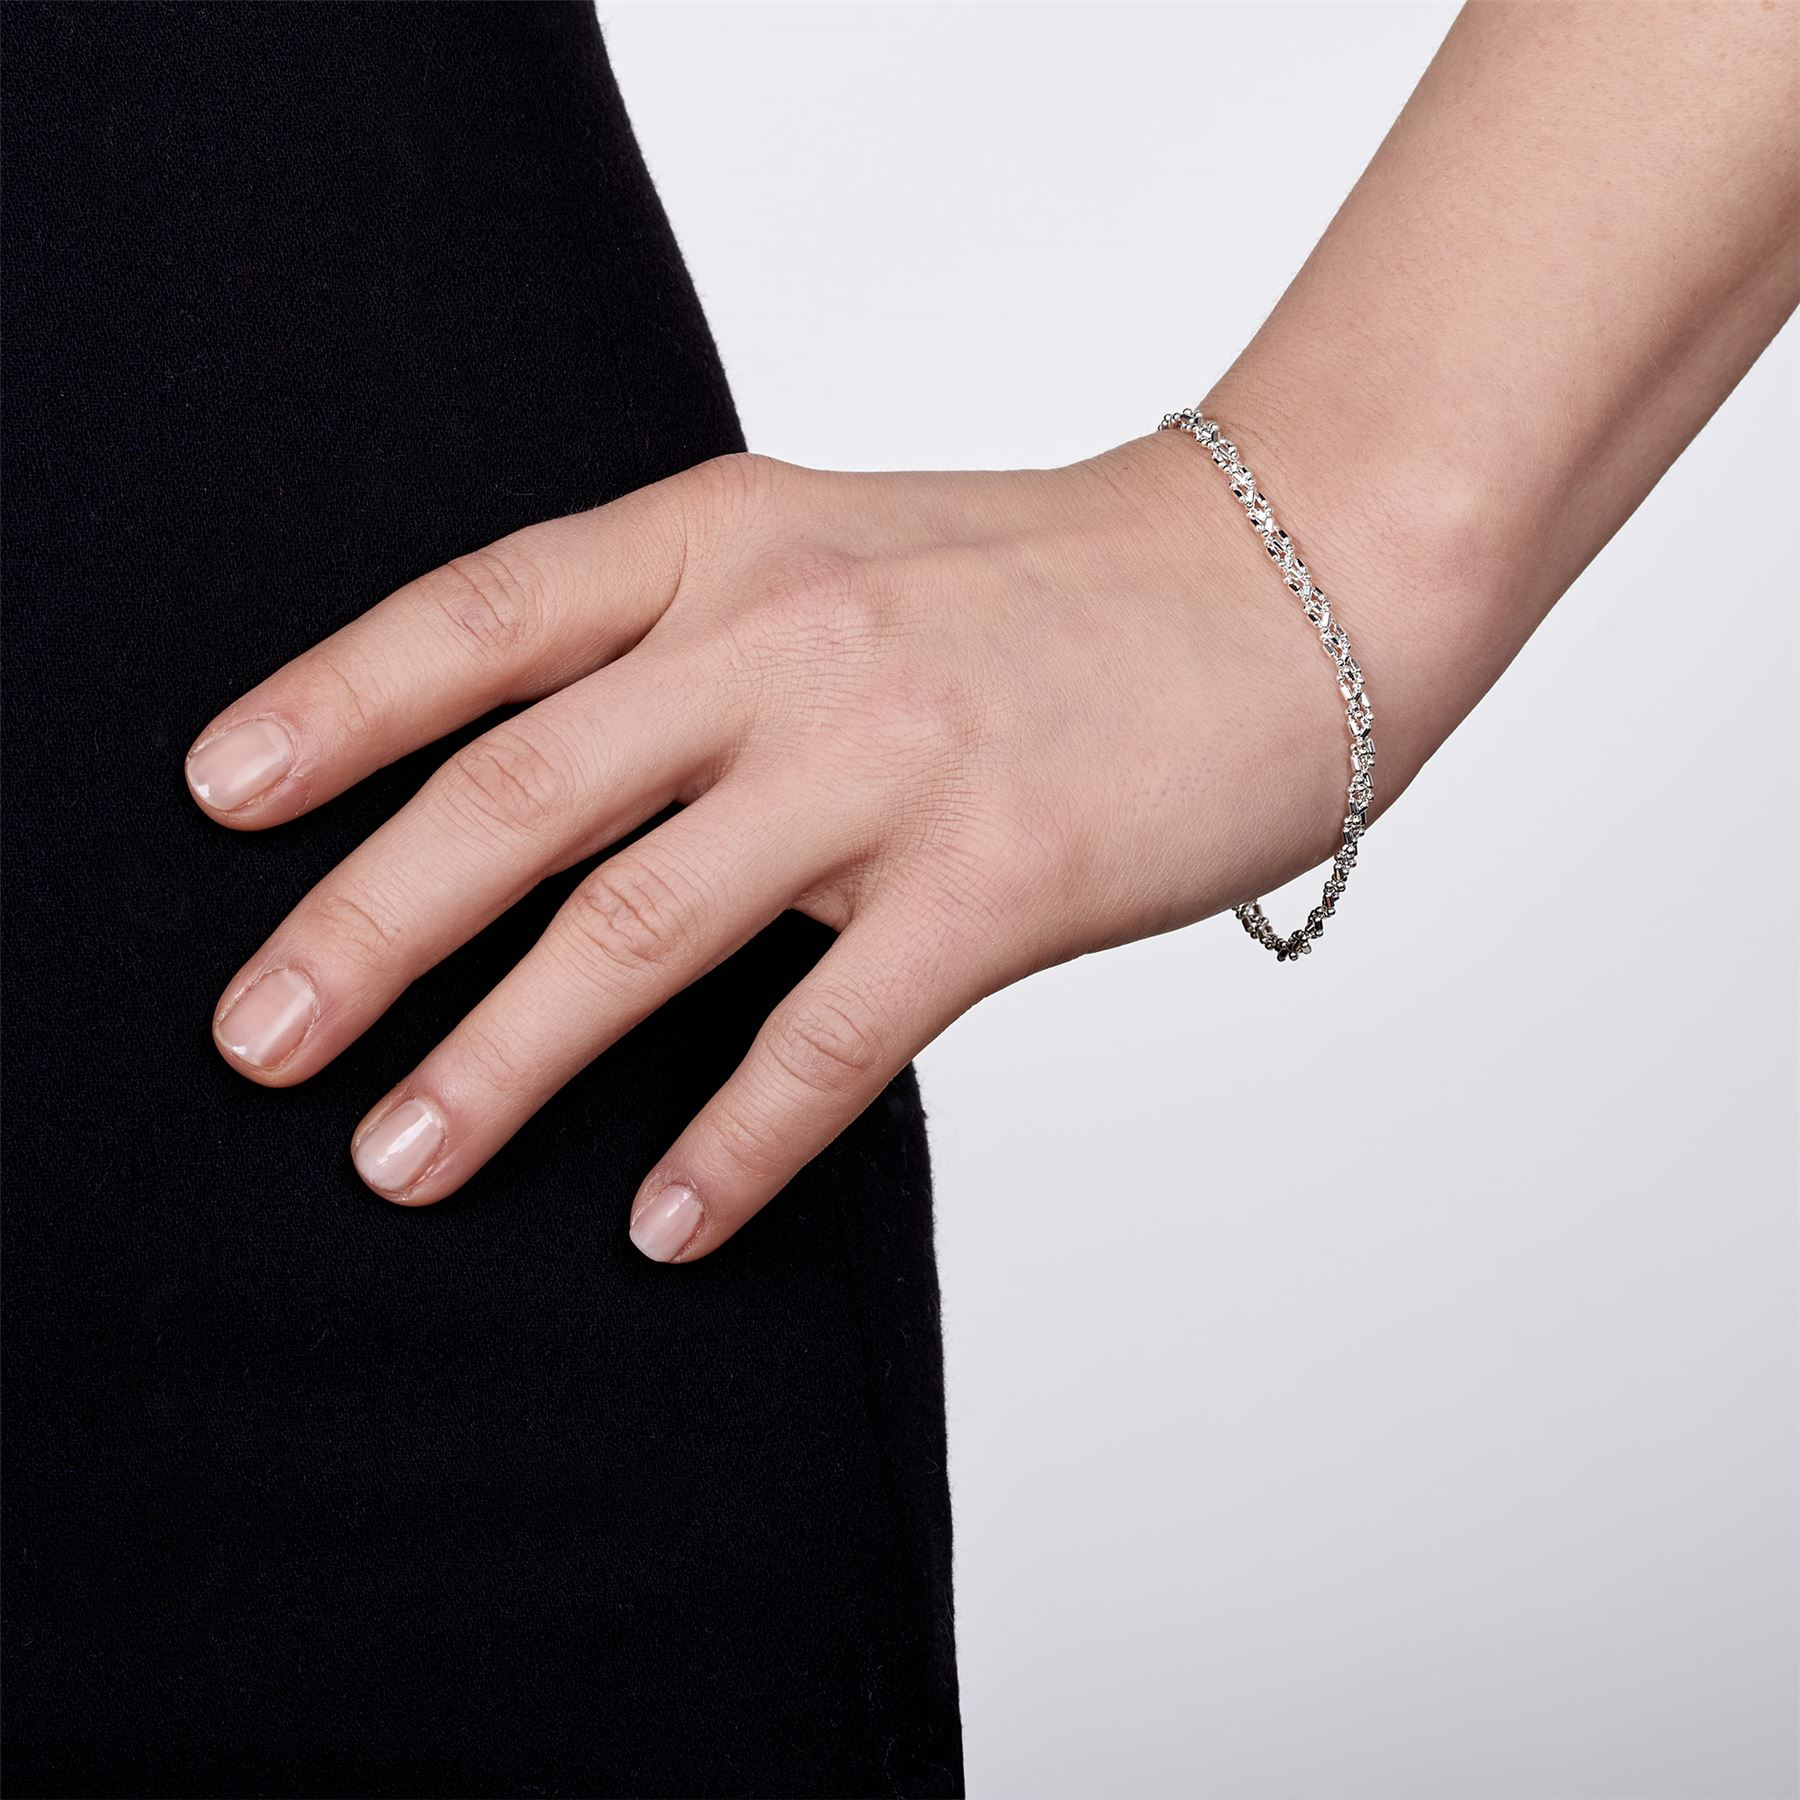 Amberta-Jewelry-Genuine-925-Sterling-Silver-Bracelet-Bangle-Chain-Made-in-Italy thumbnail 85